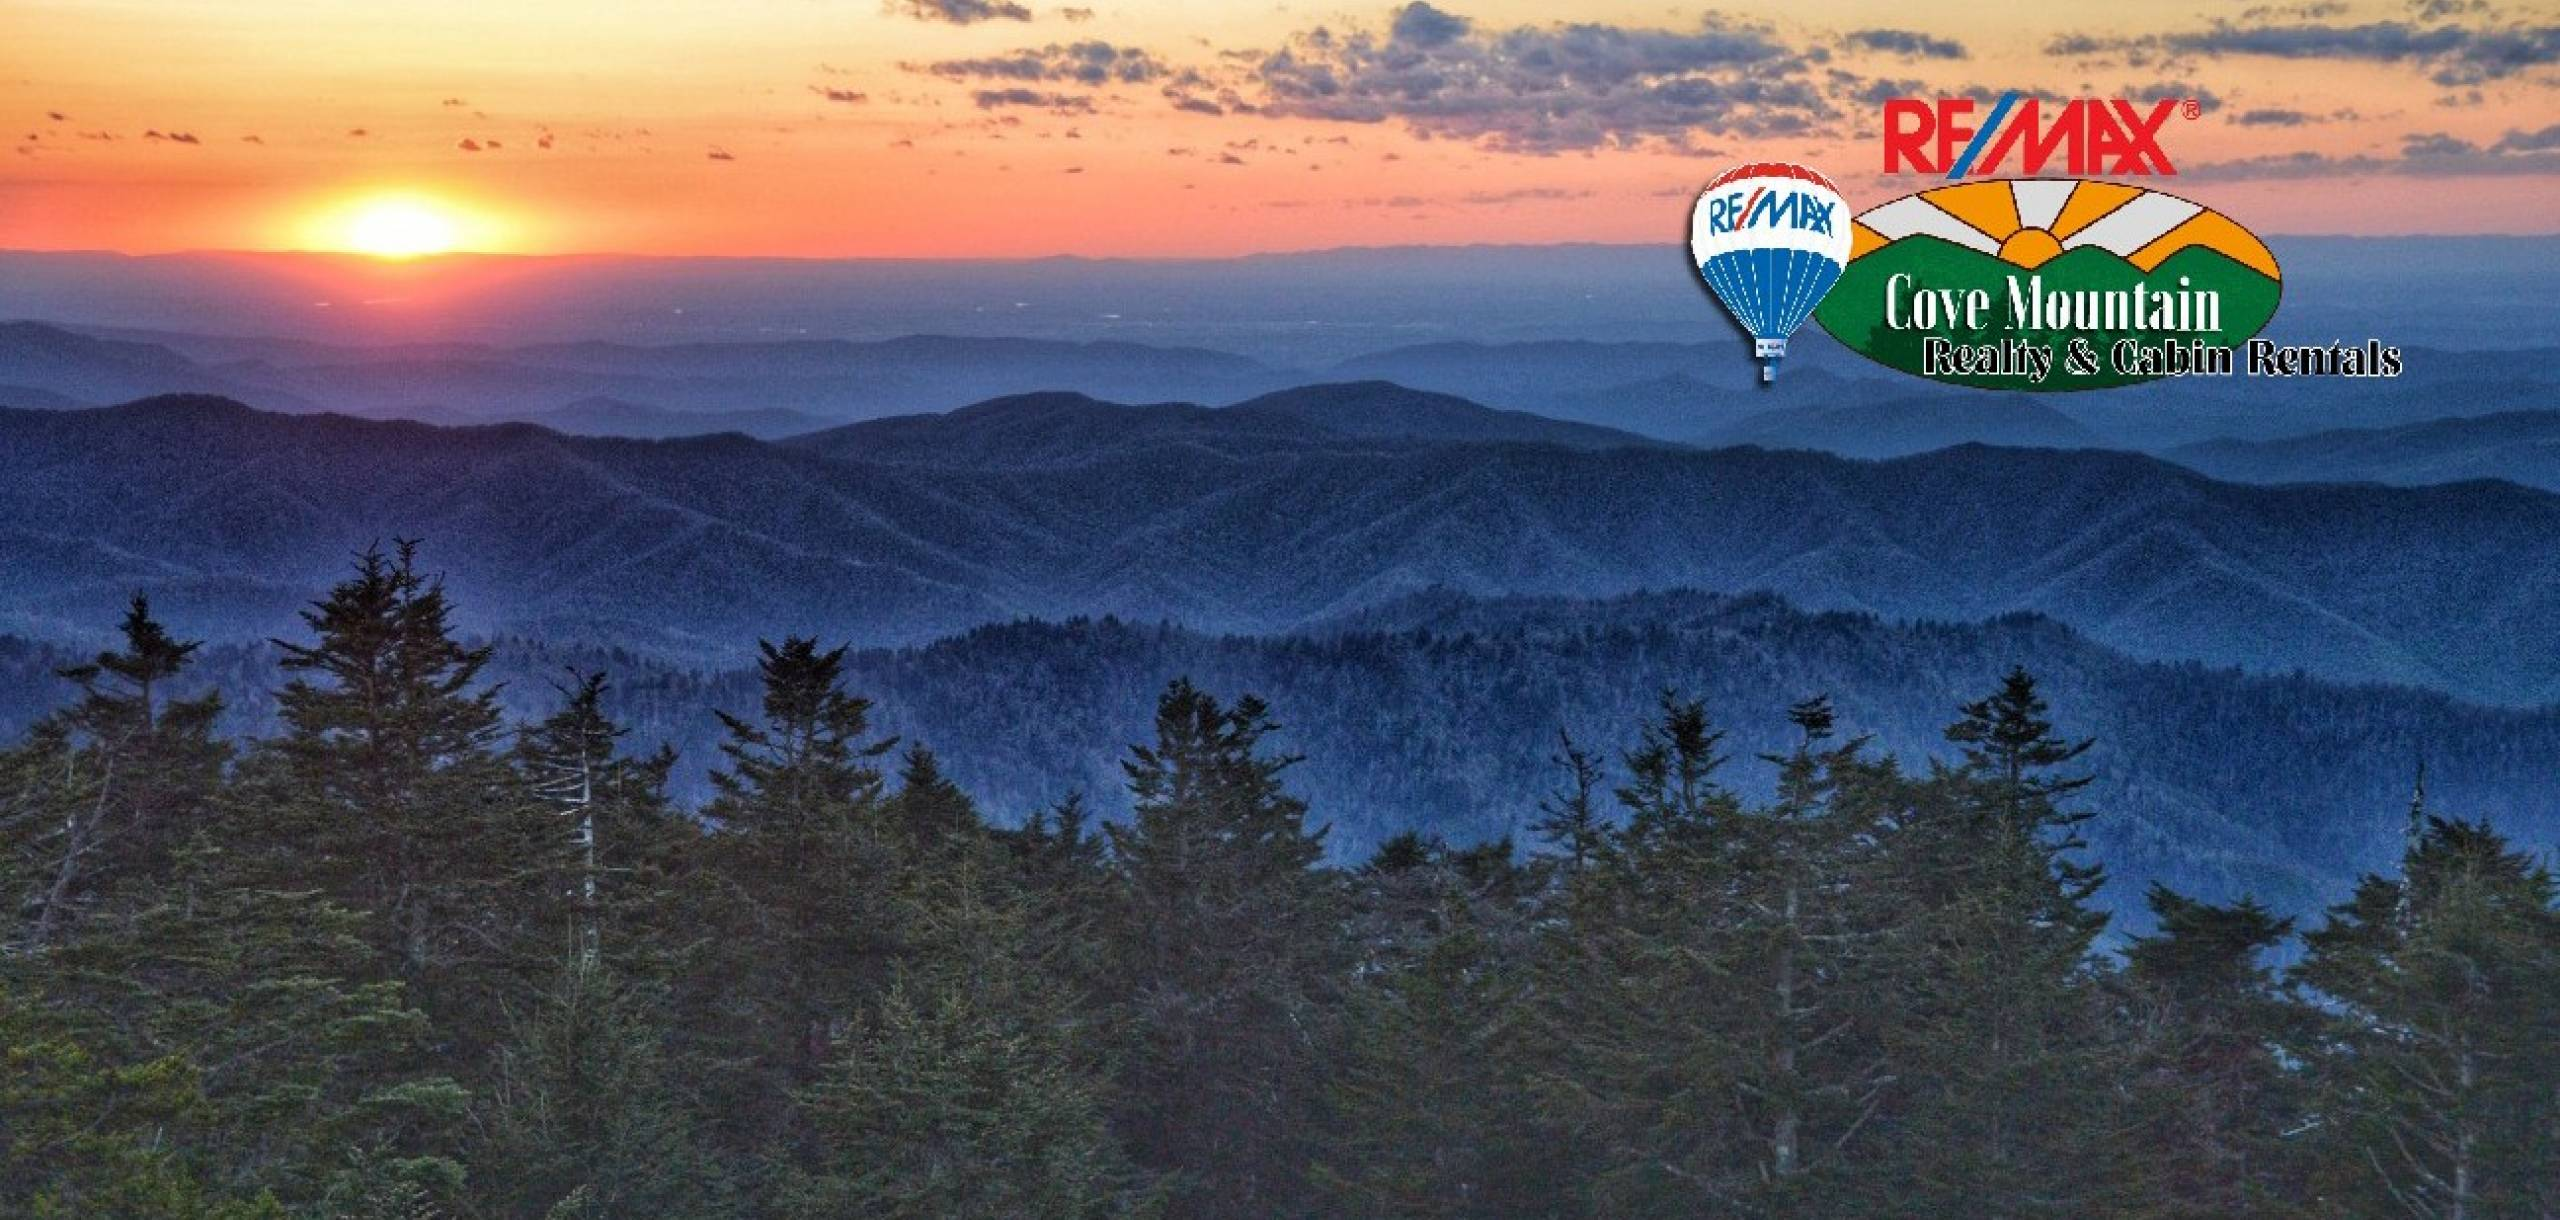 Smoky Mountain Cabin Renals | RE/MAX Cove Mountain Realty